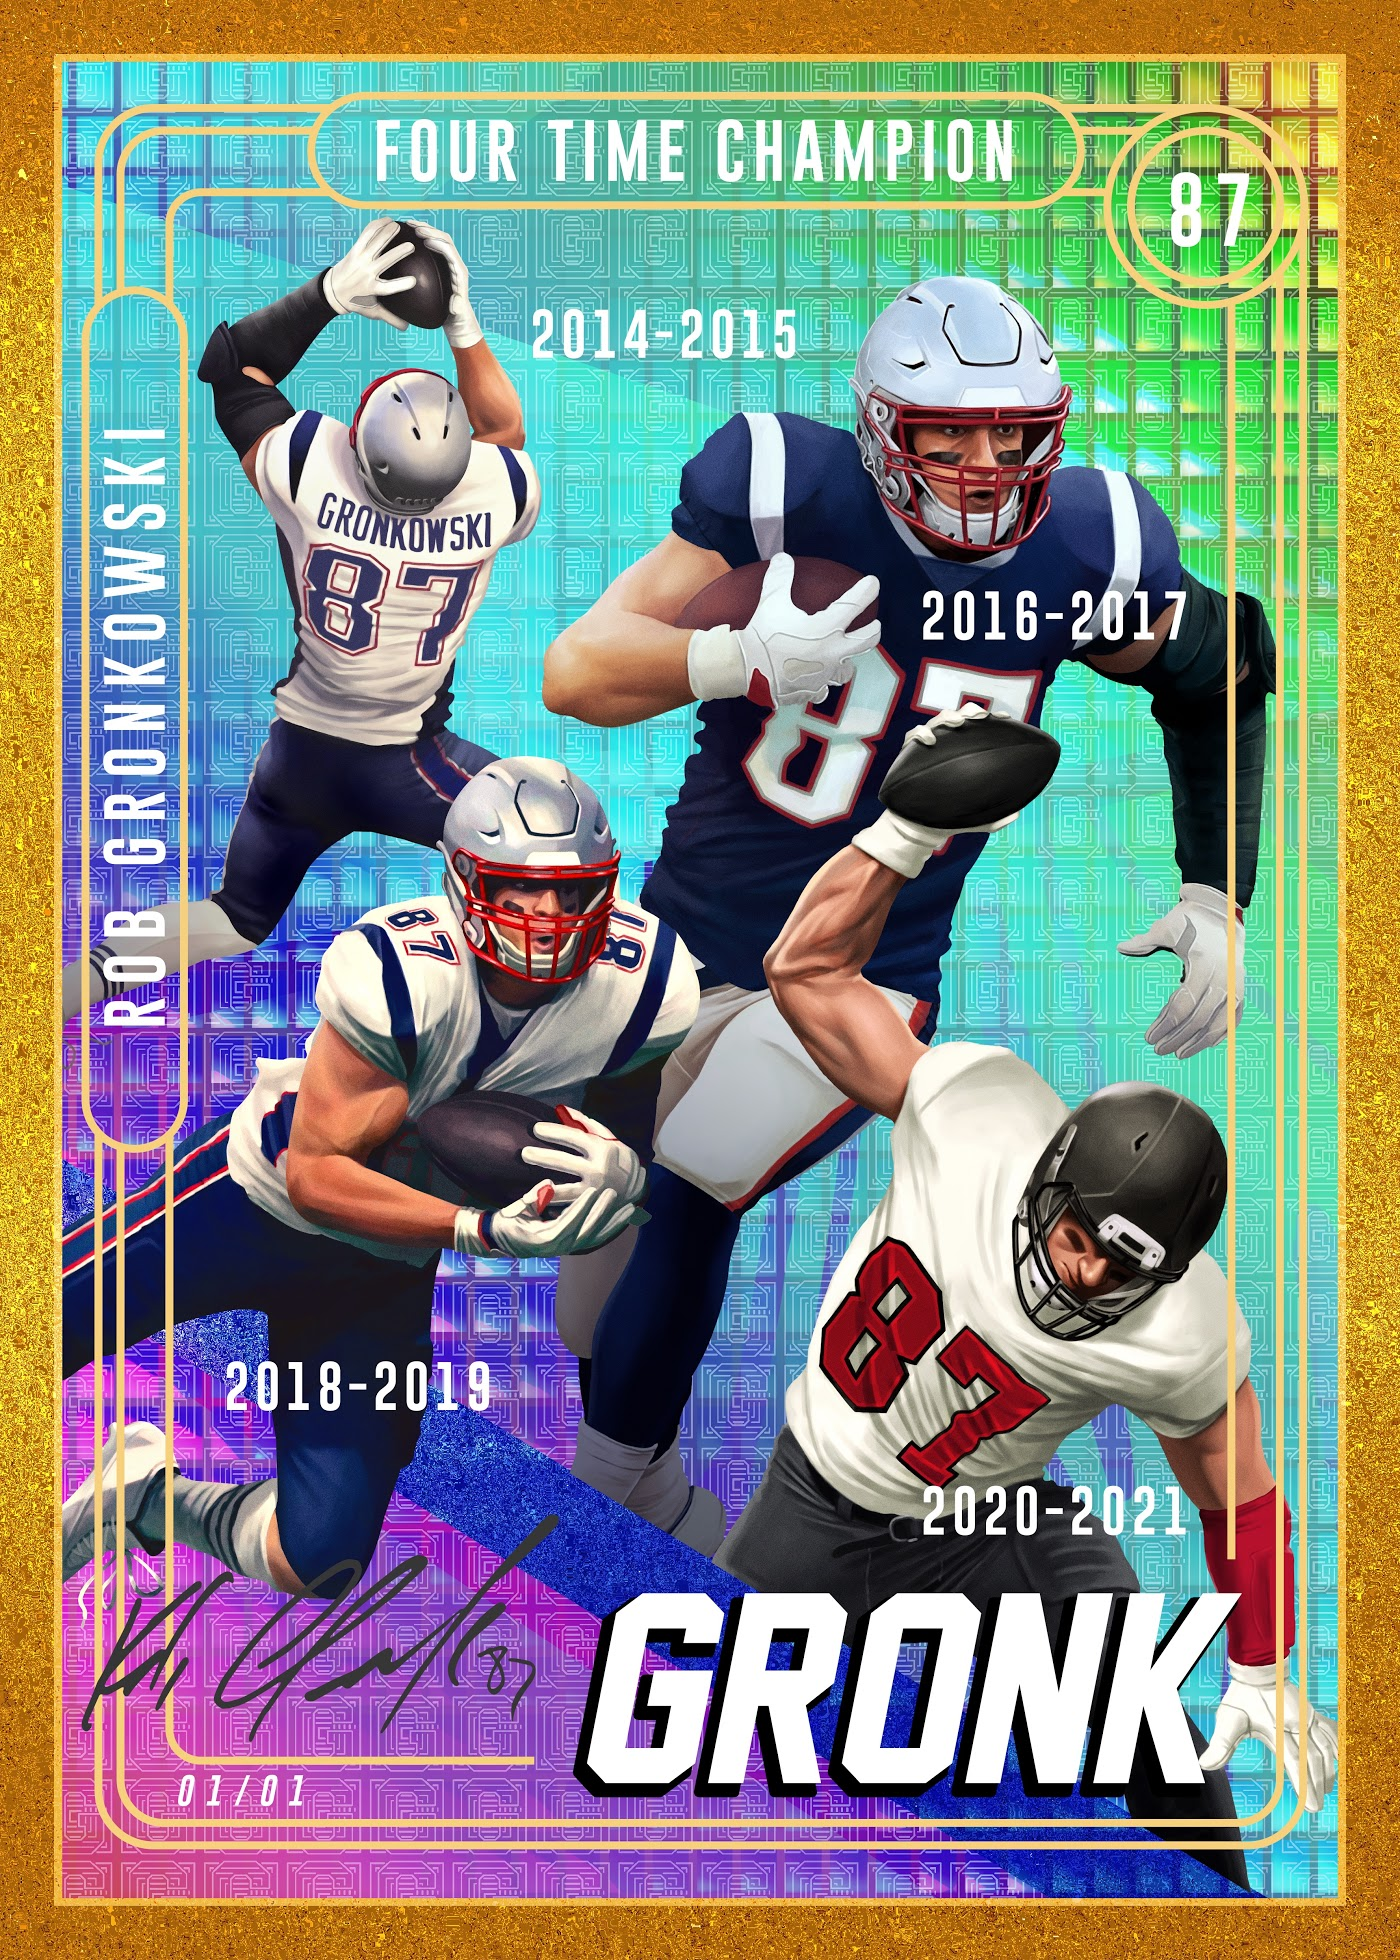 (1-of-1) GRONK Career Highlight Card by Rob Gronkowski